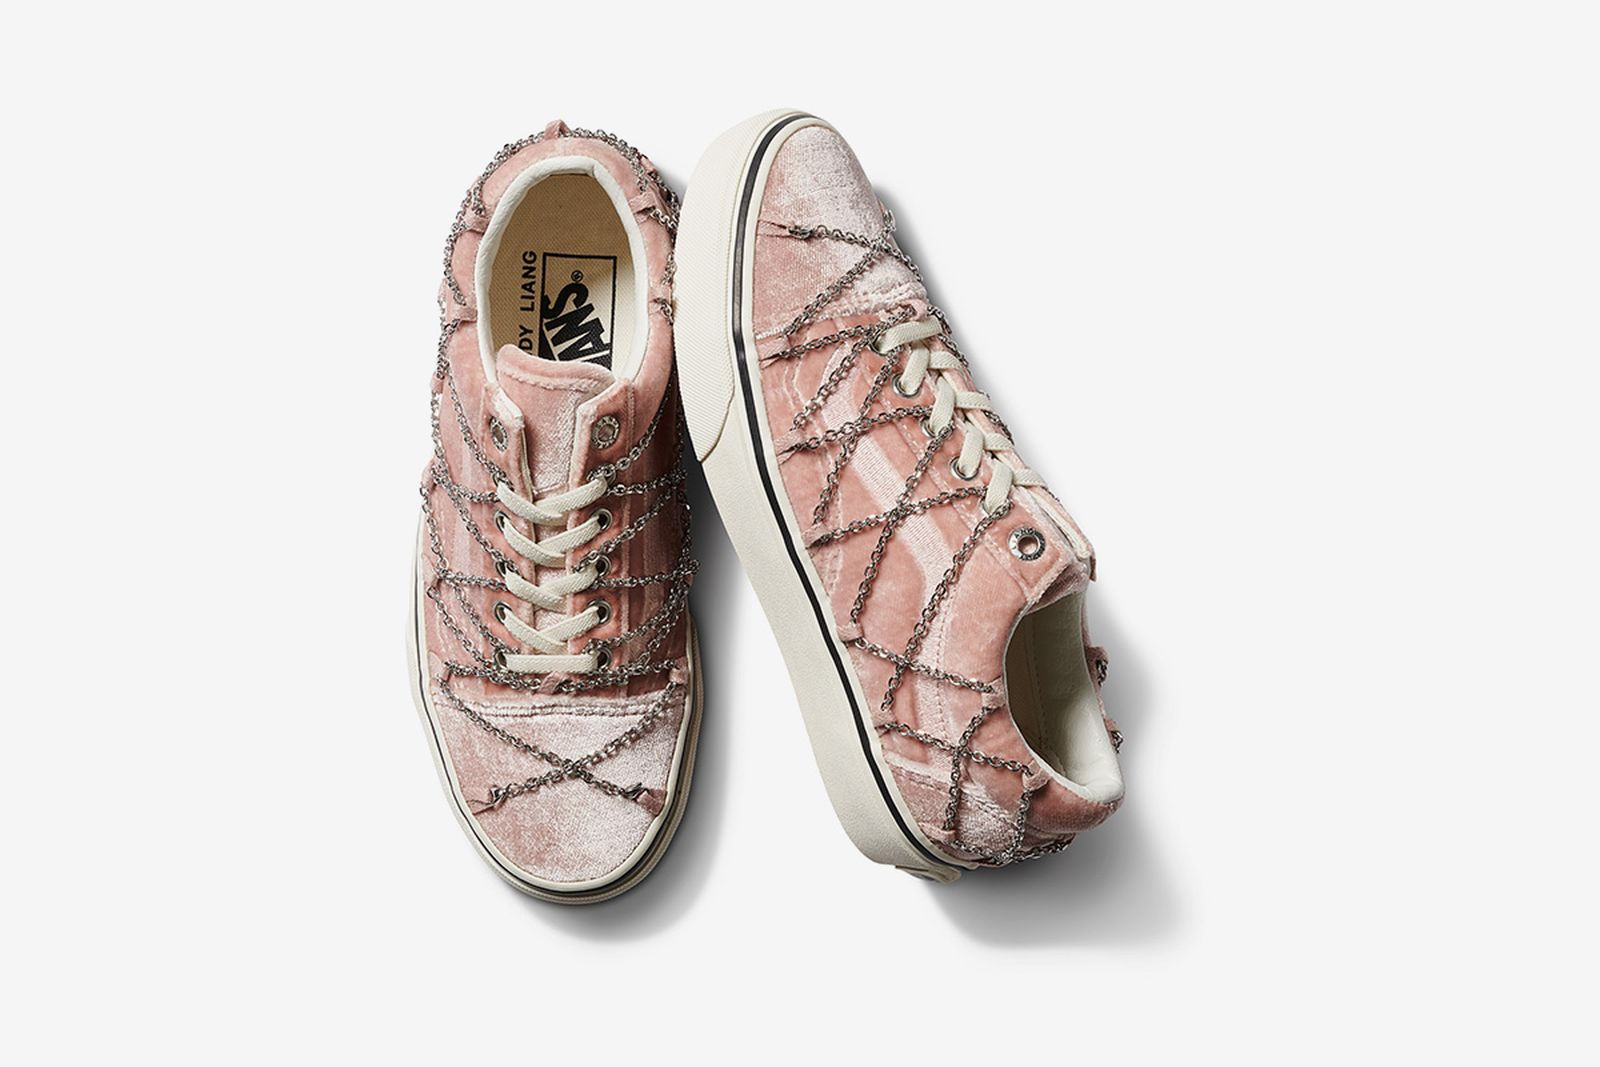 sandy-liang-vans-collection-release-date-price-1-18